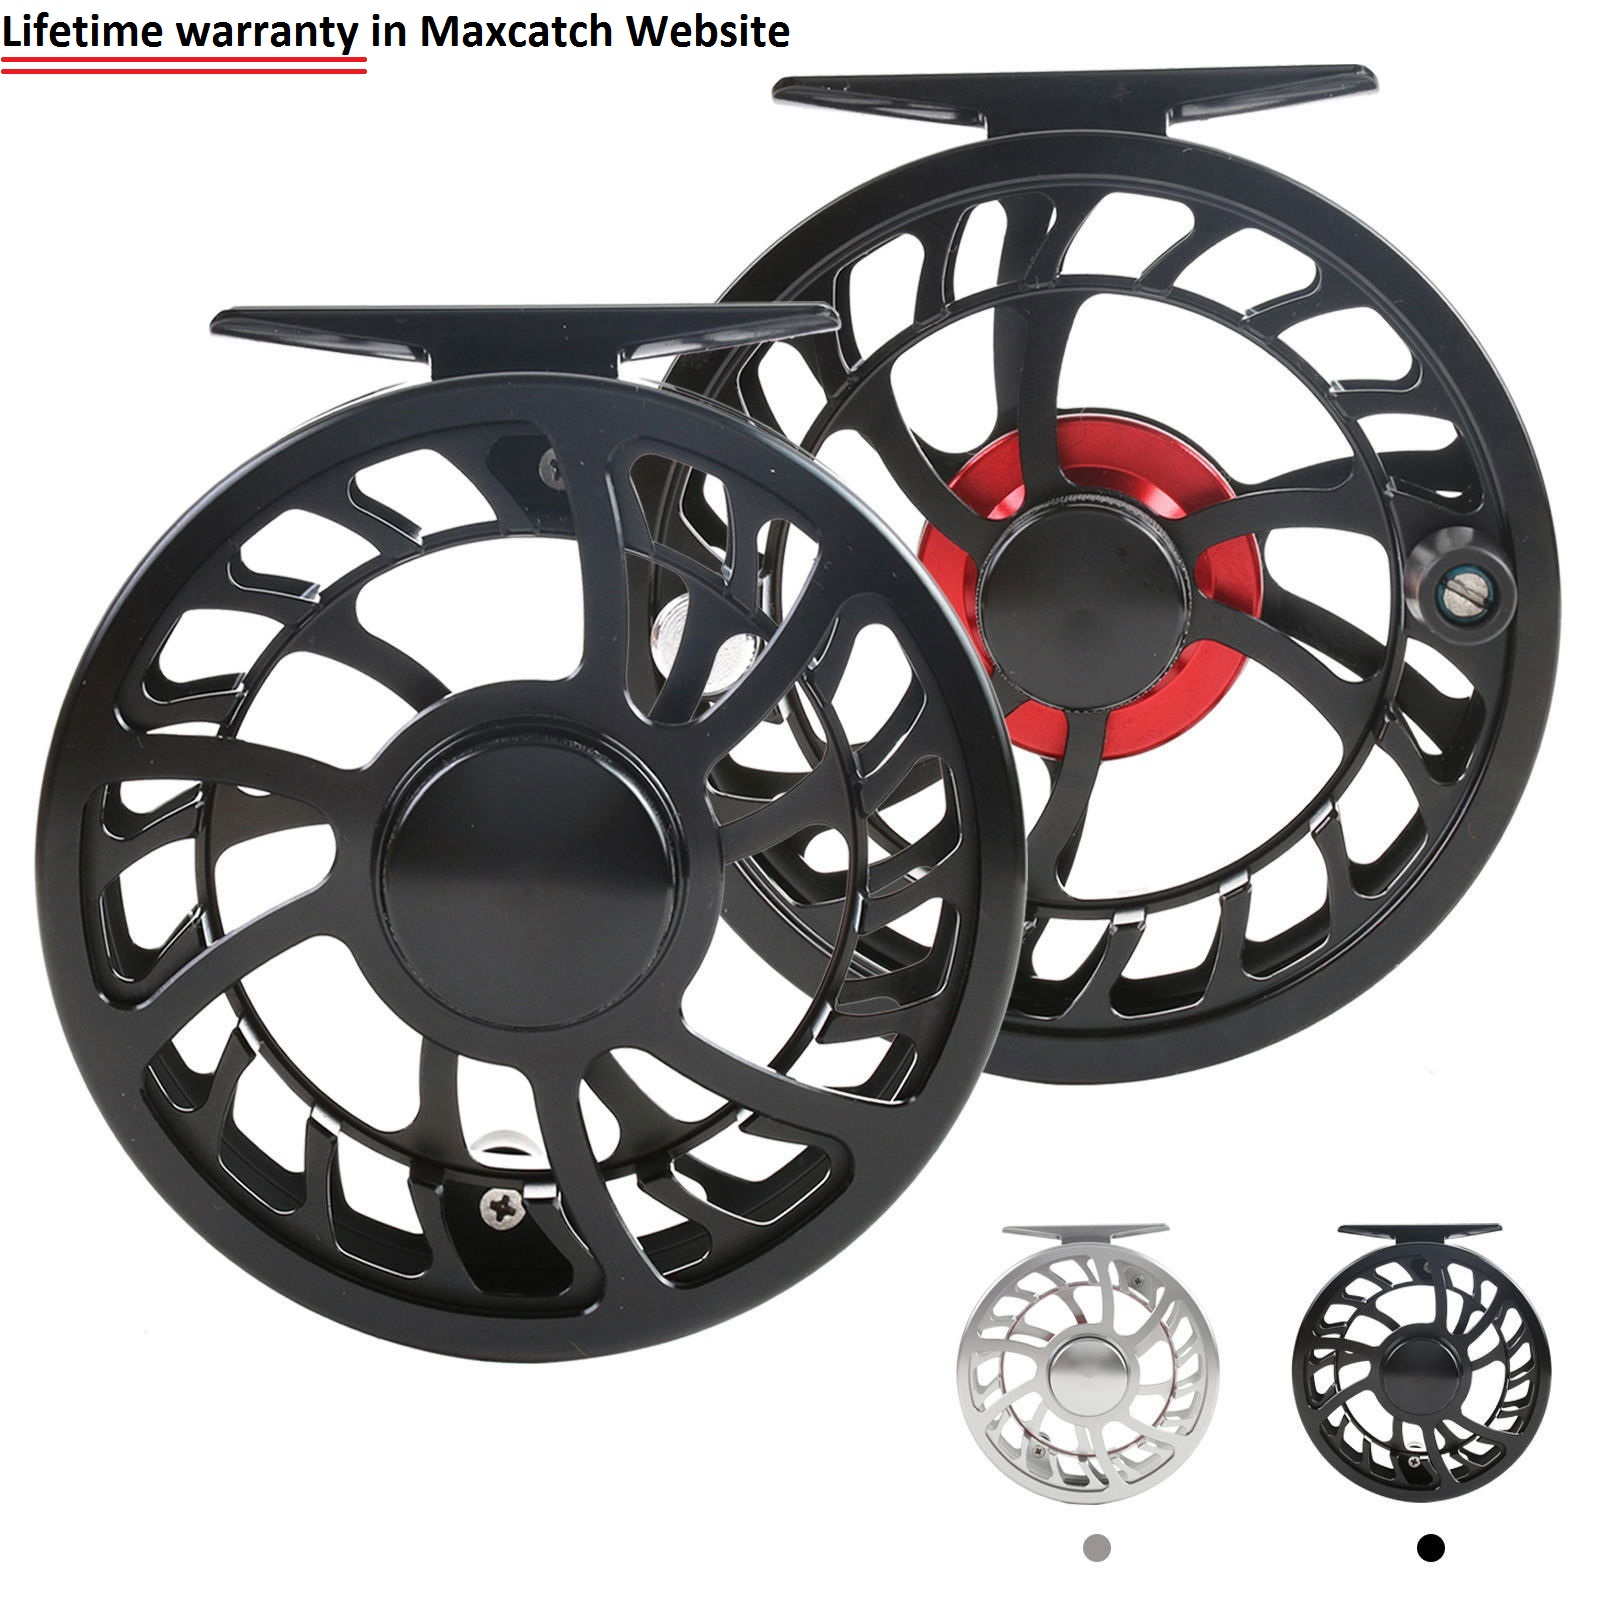 Professional Super Light CNC Machine Cut Large Arbor Aluminum Fly reel (Lifetime Warranty)